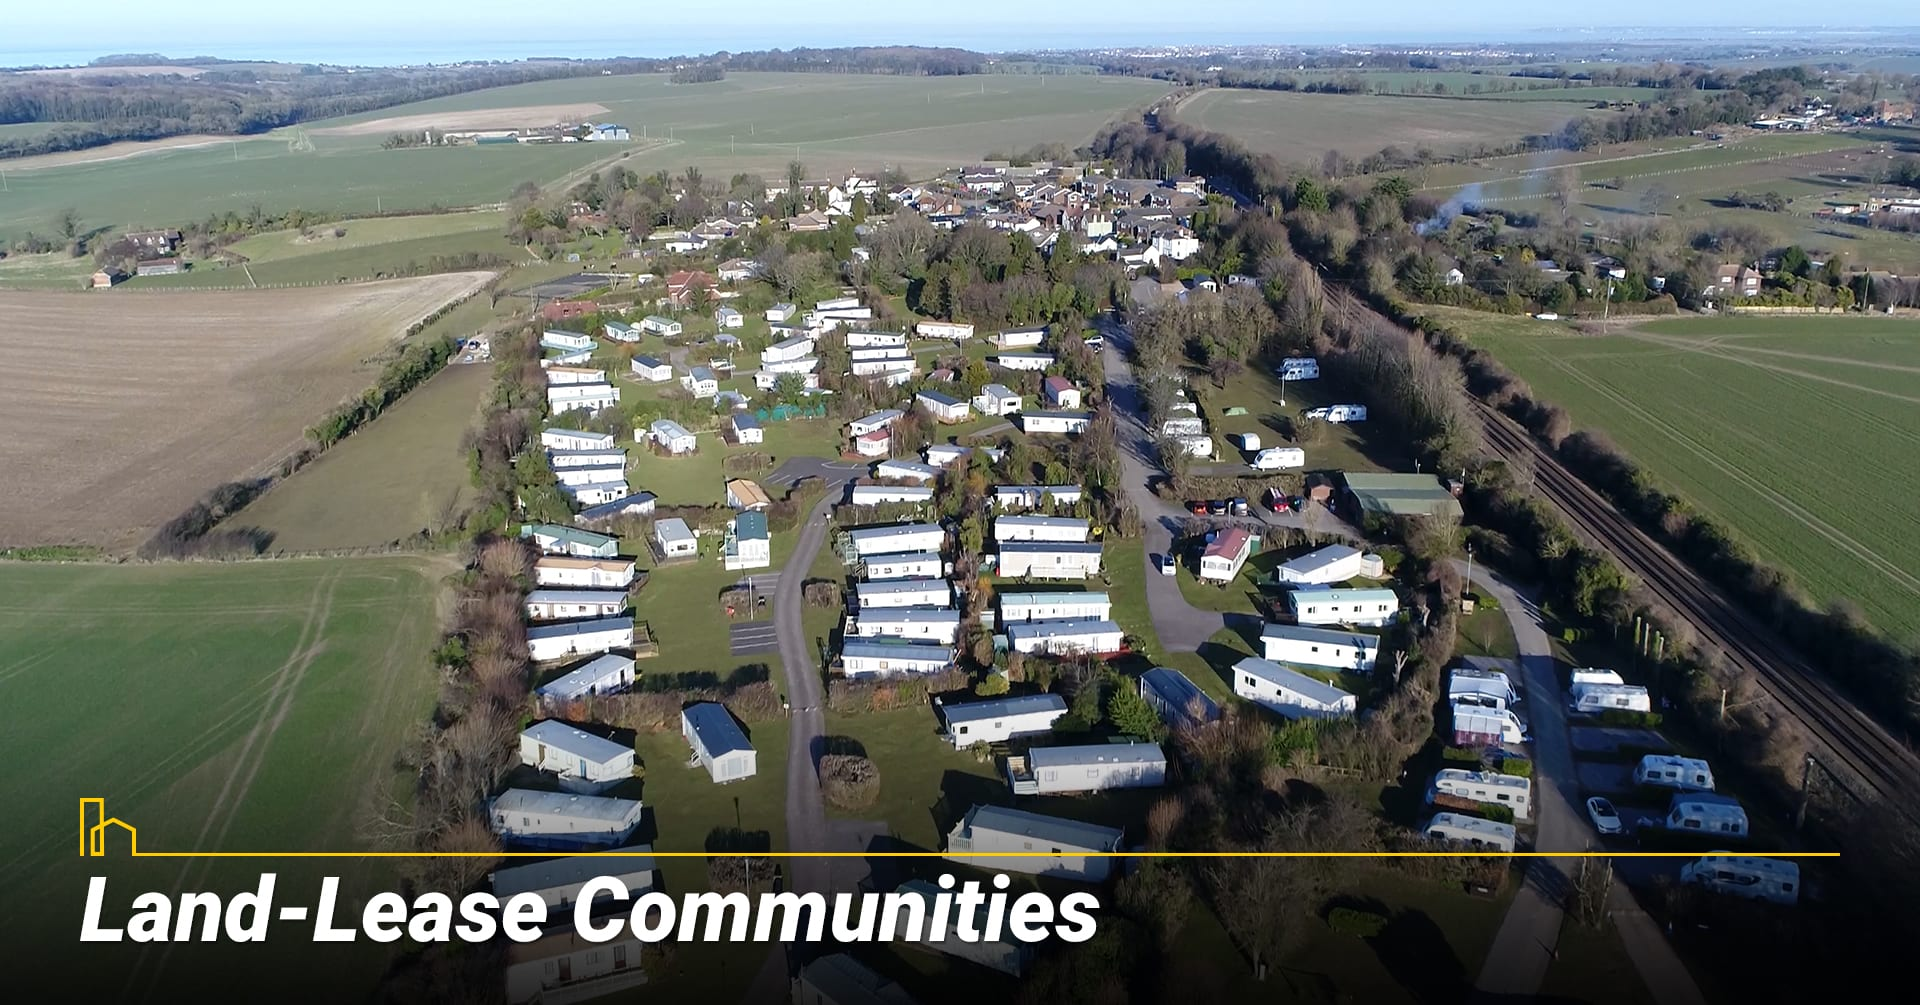 Land-Lease Communities, land-lease for your manufactured home